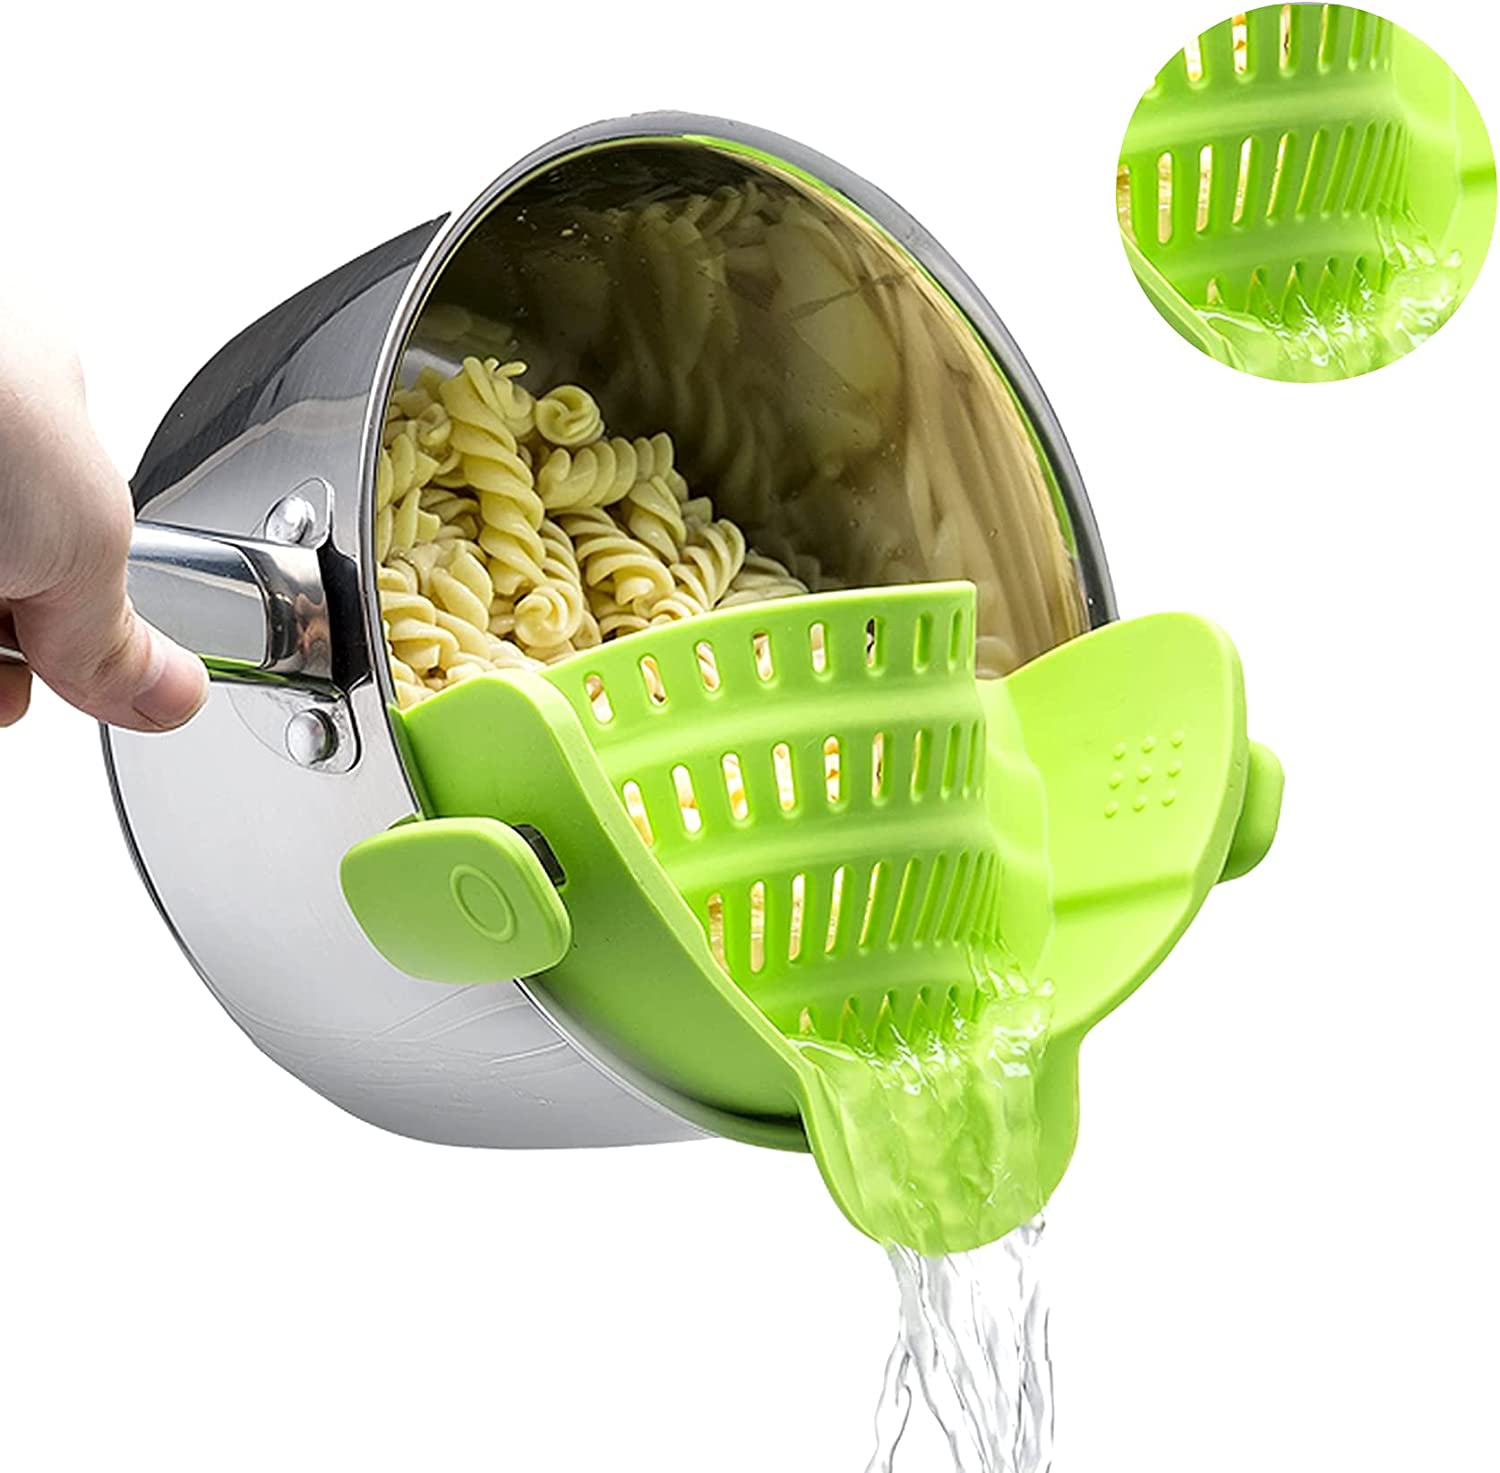 Clip on Food Strainer for Kitchen, Silicone Pasta Pans with Strainer Fit Most Pots, Muzpz Heat Resistant Strainer with 2 Clips for Pasta, Spaghetti, Fruit, Home Kitchen Gadgets for Women Save Time